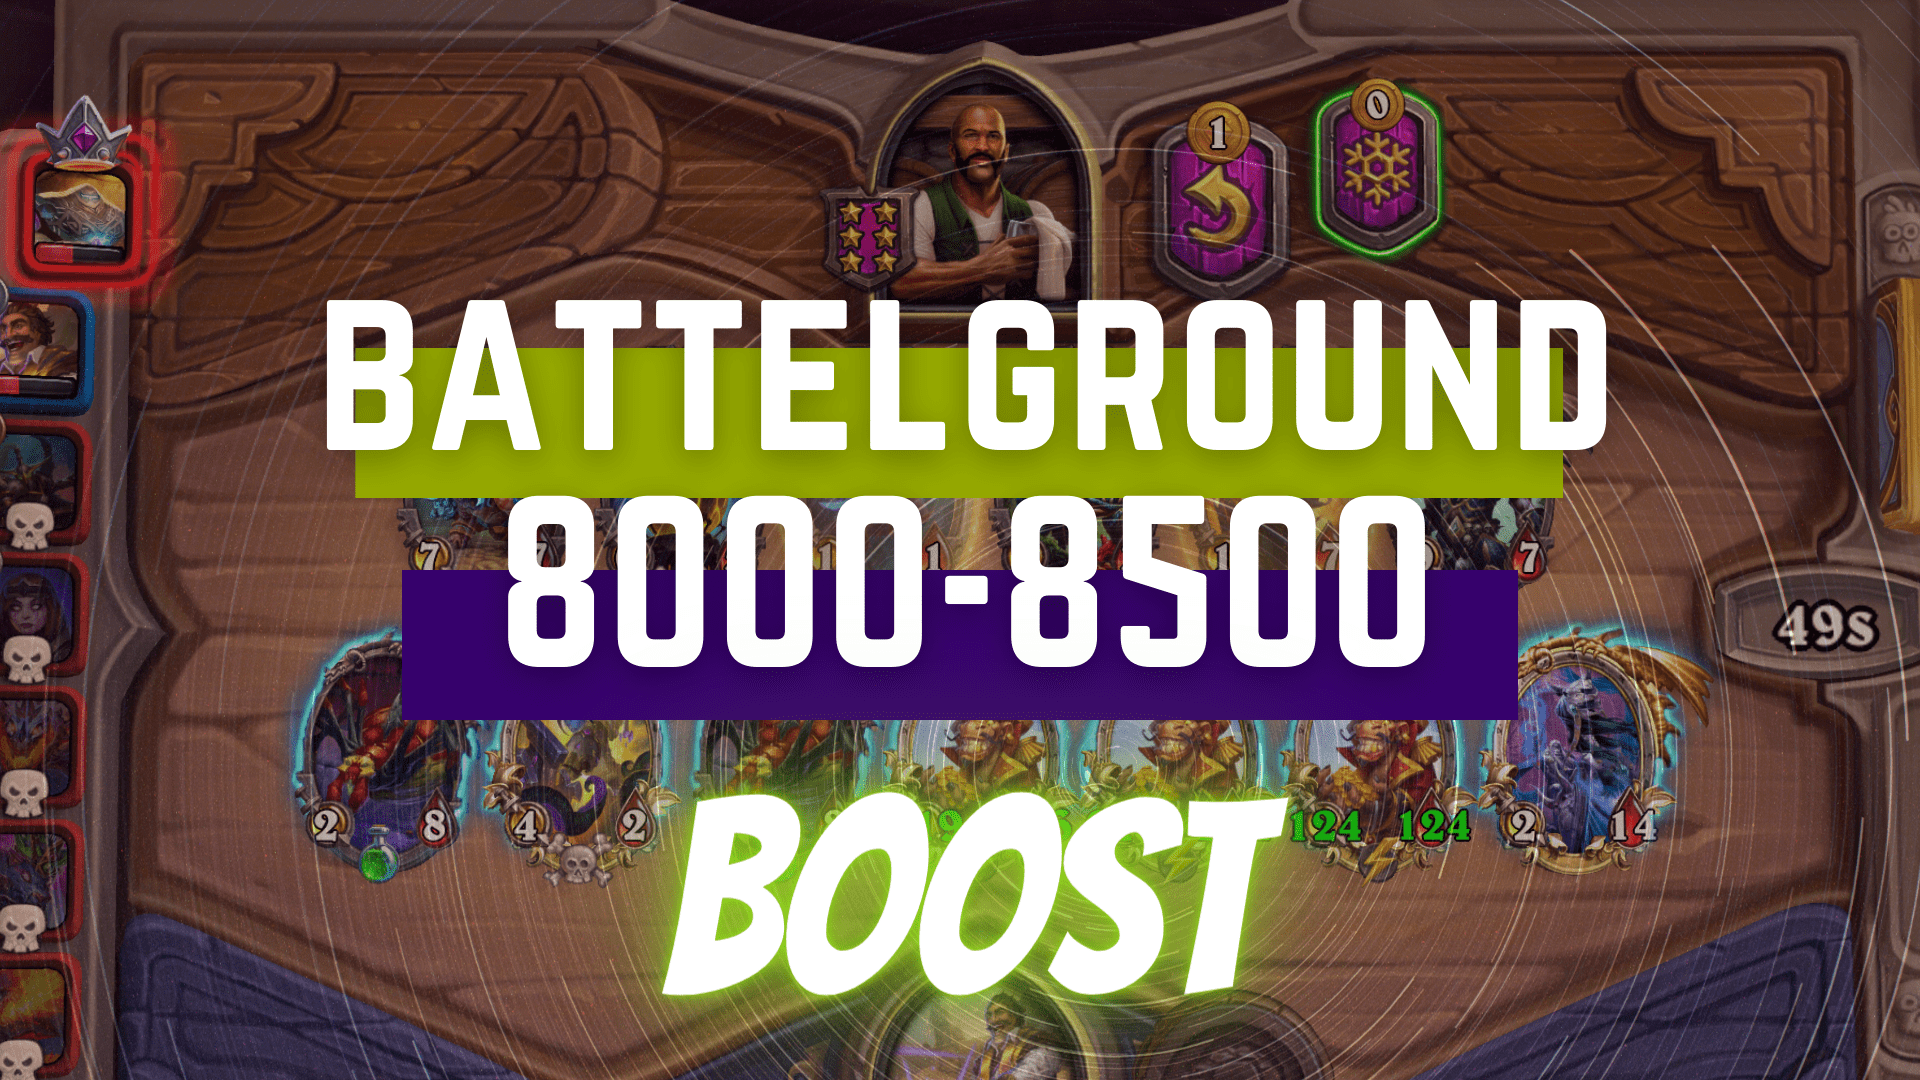 [BATTLEGROUNDS RATING] BOOST FROM 8000 TO 8500 Zafari - e2p.com